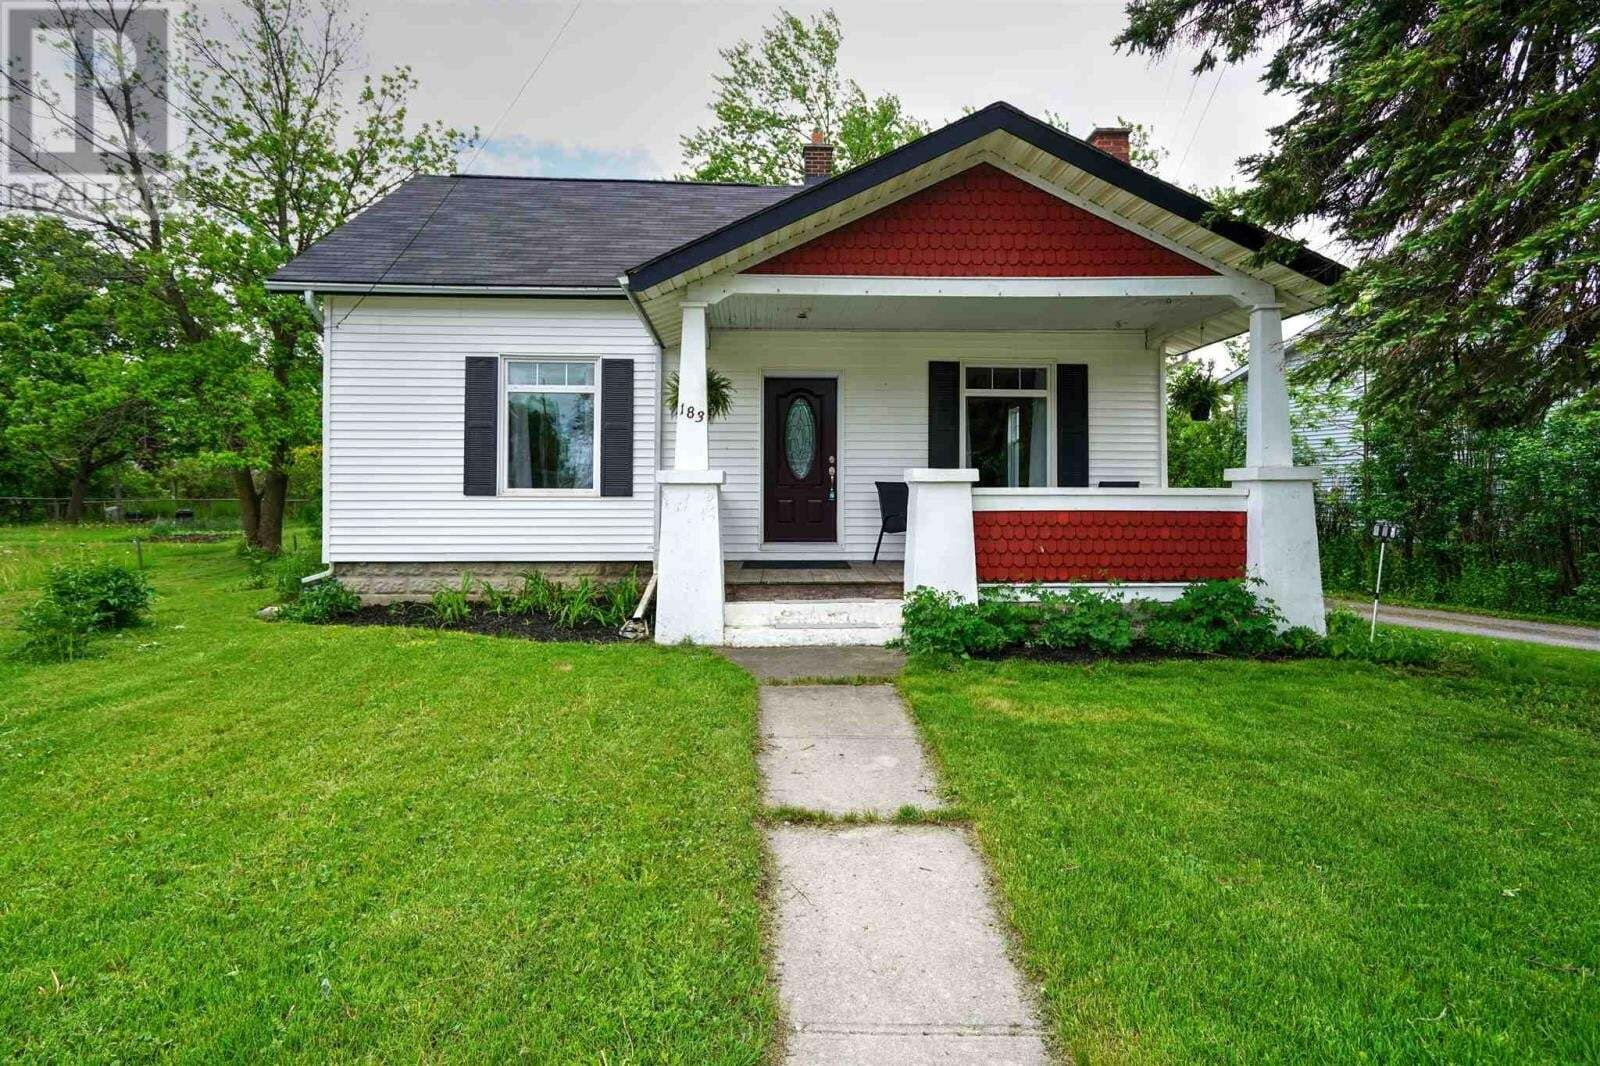 House for sale at 183 Main St N Odessa Ontario - MLS: K20002823